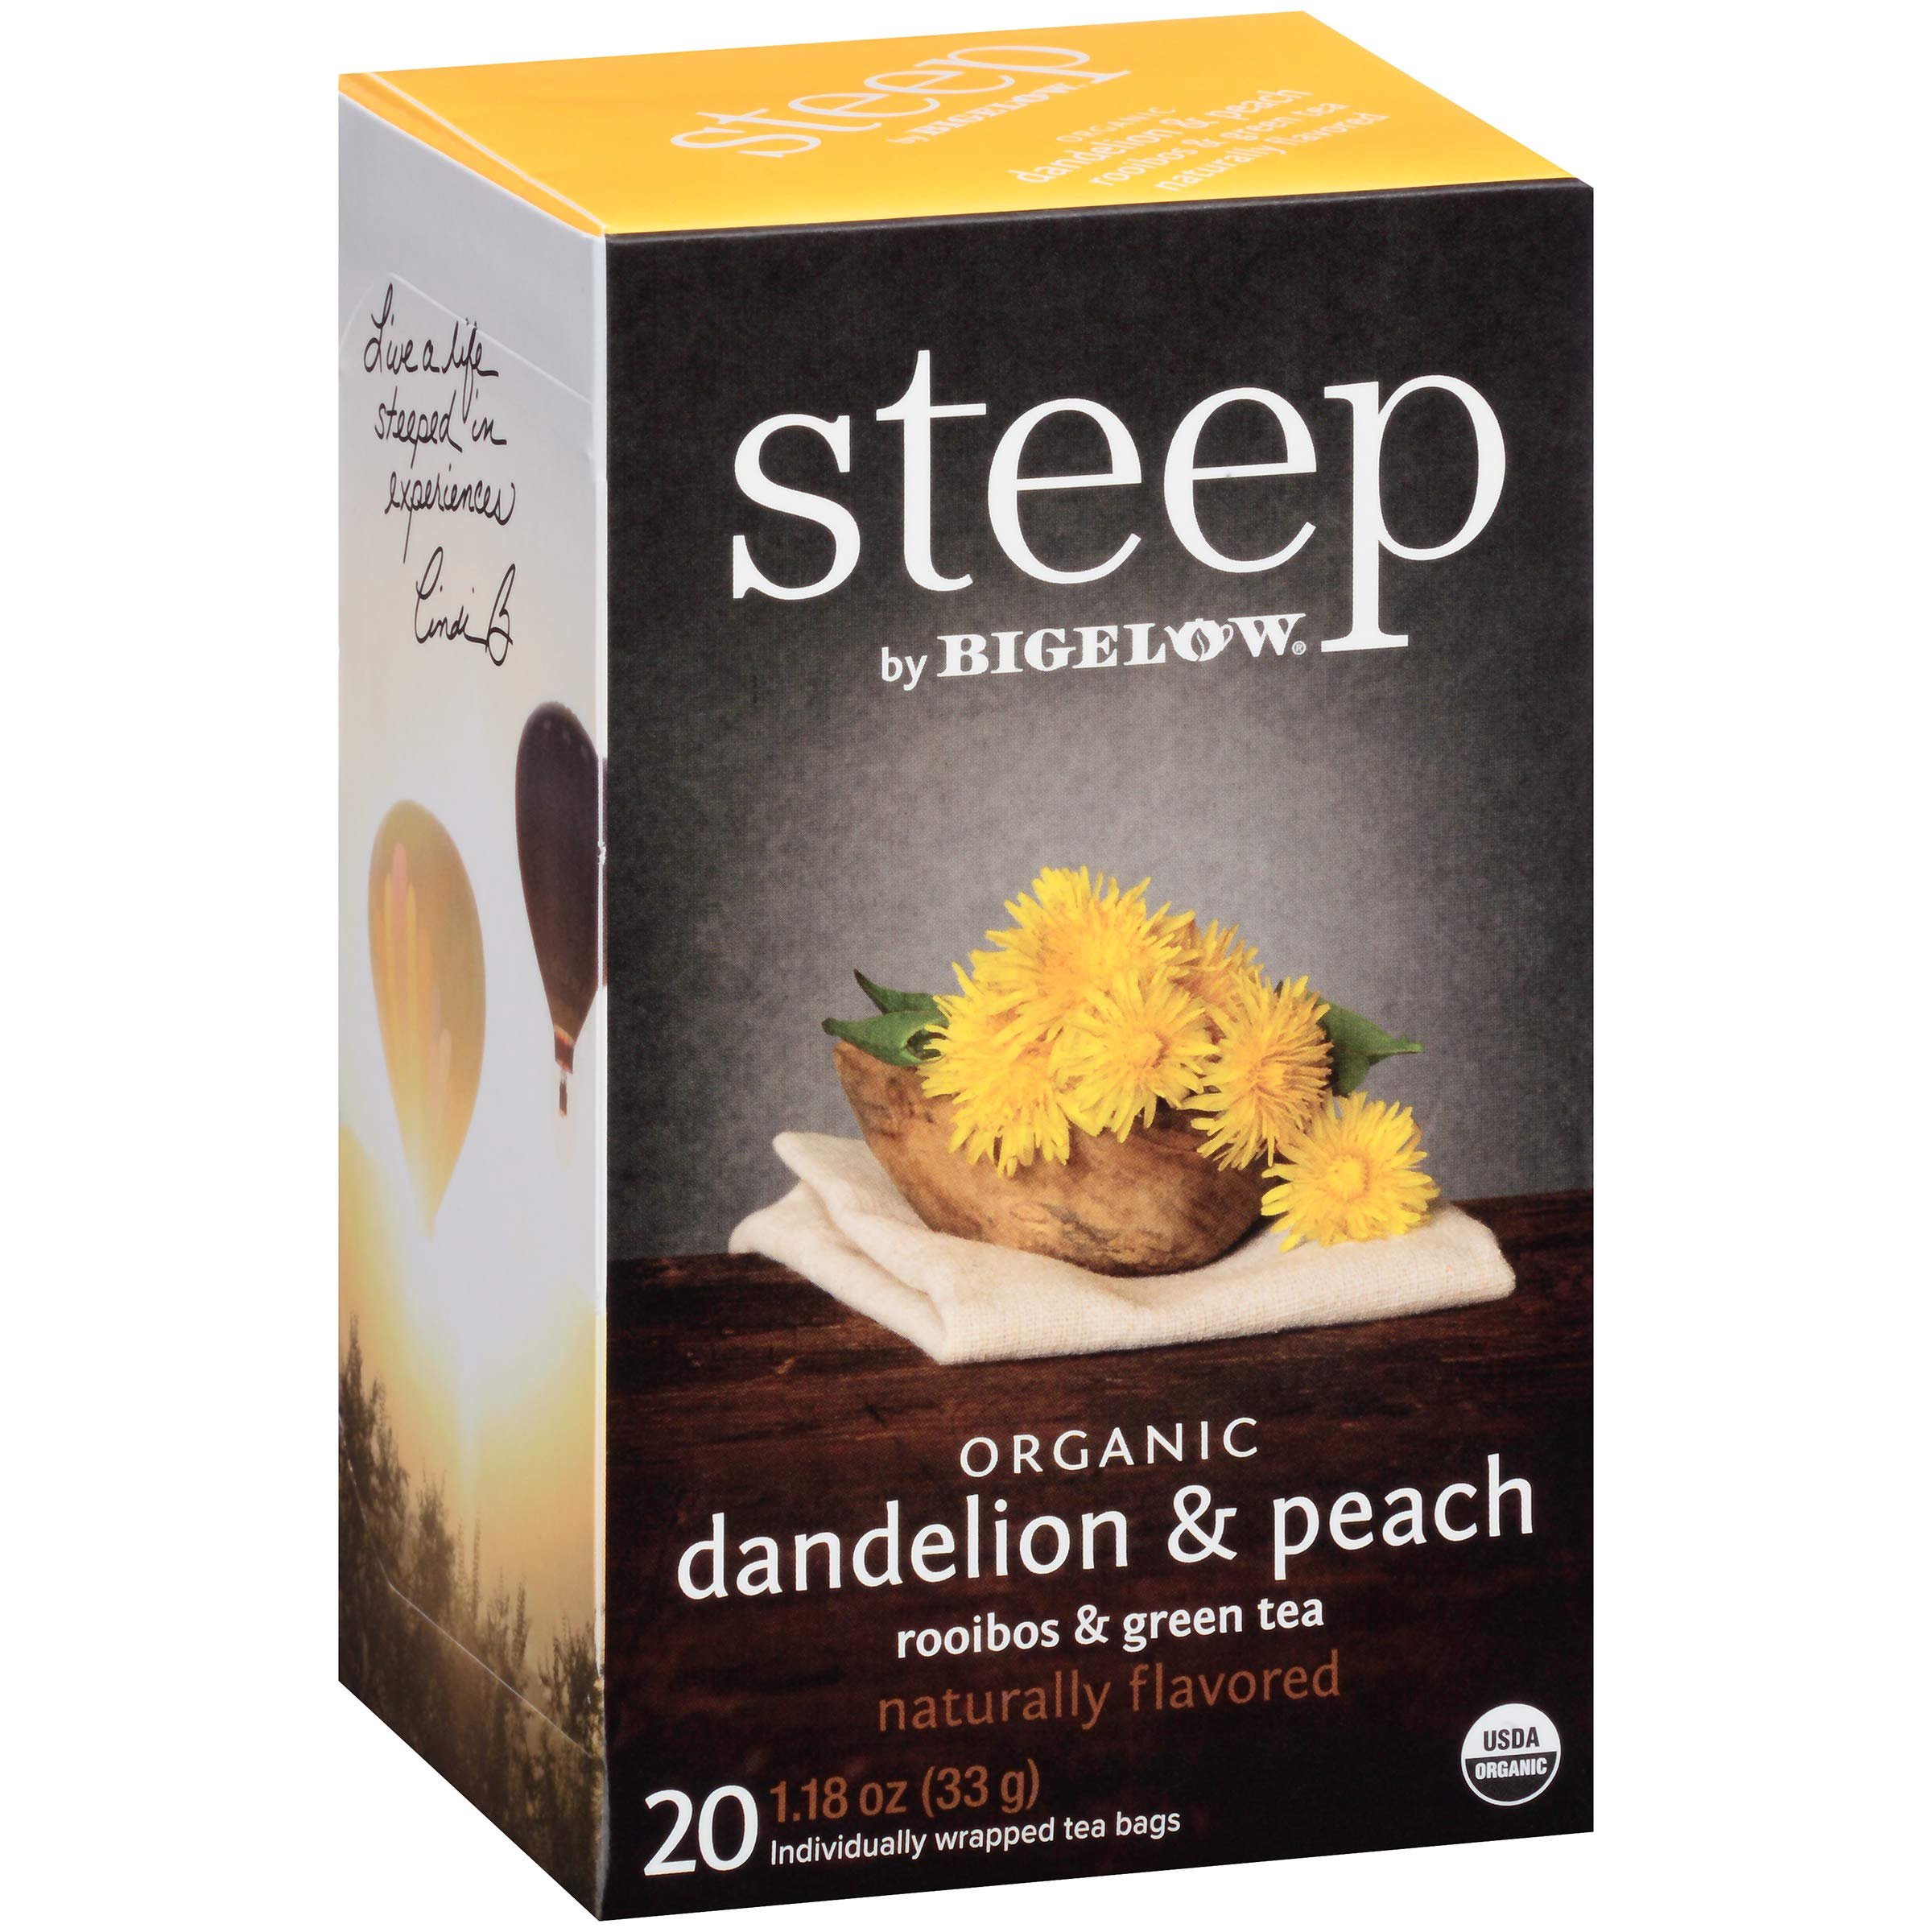 steep by Bigelow Organic Dandelion and Peach with Rooibos and Green Tea, 20 Count (Pack of 6), 120 Tea Bags Total